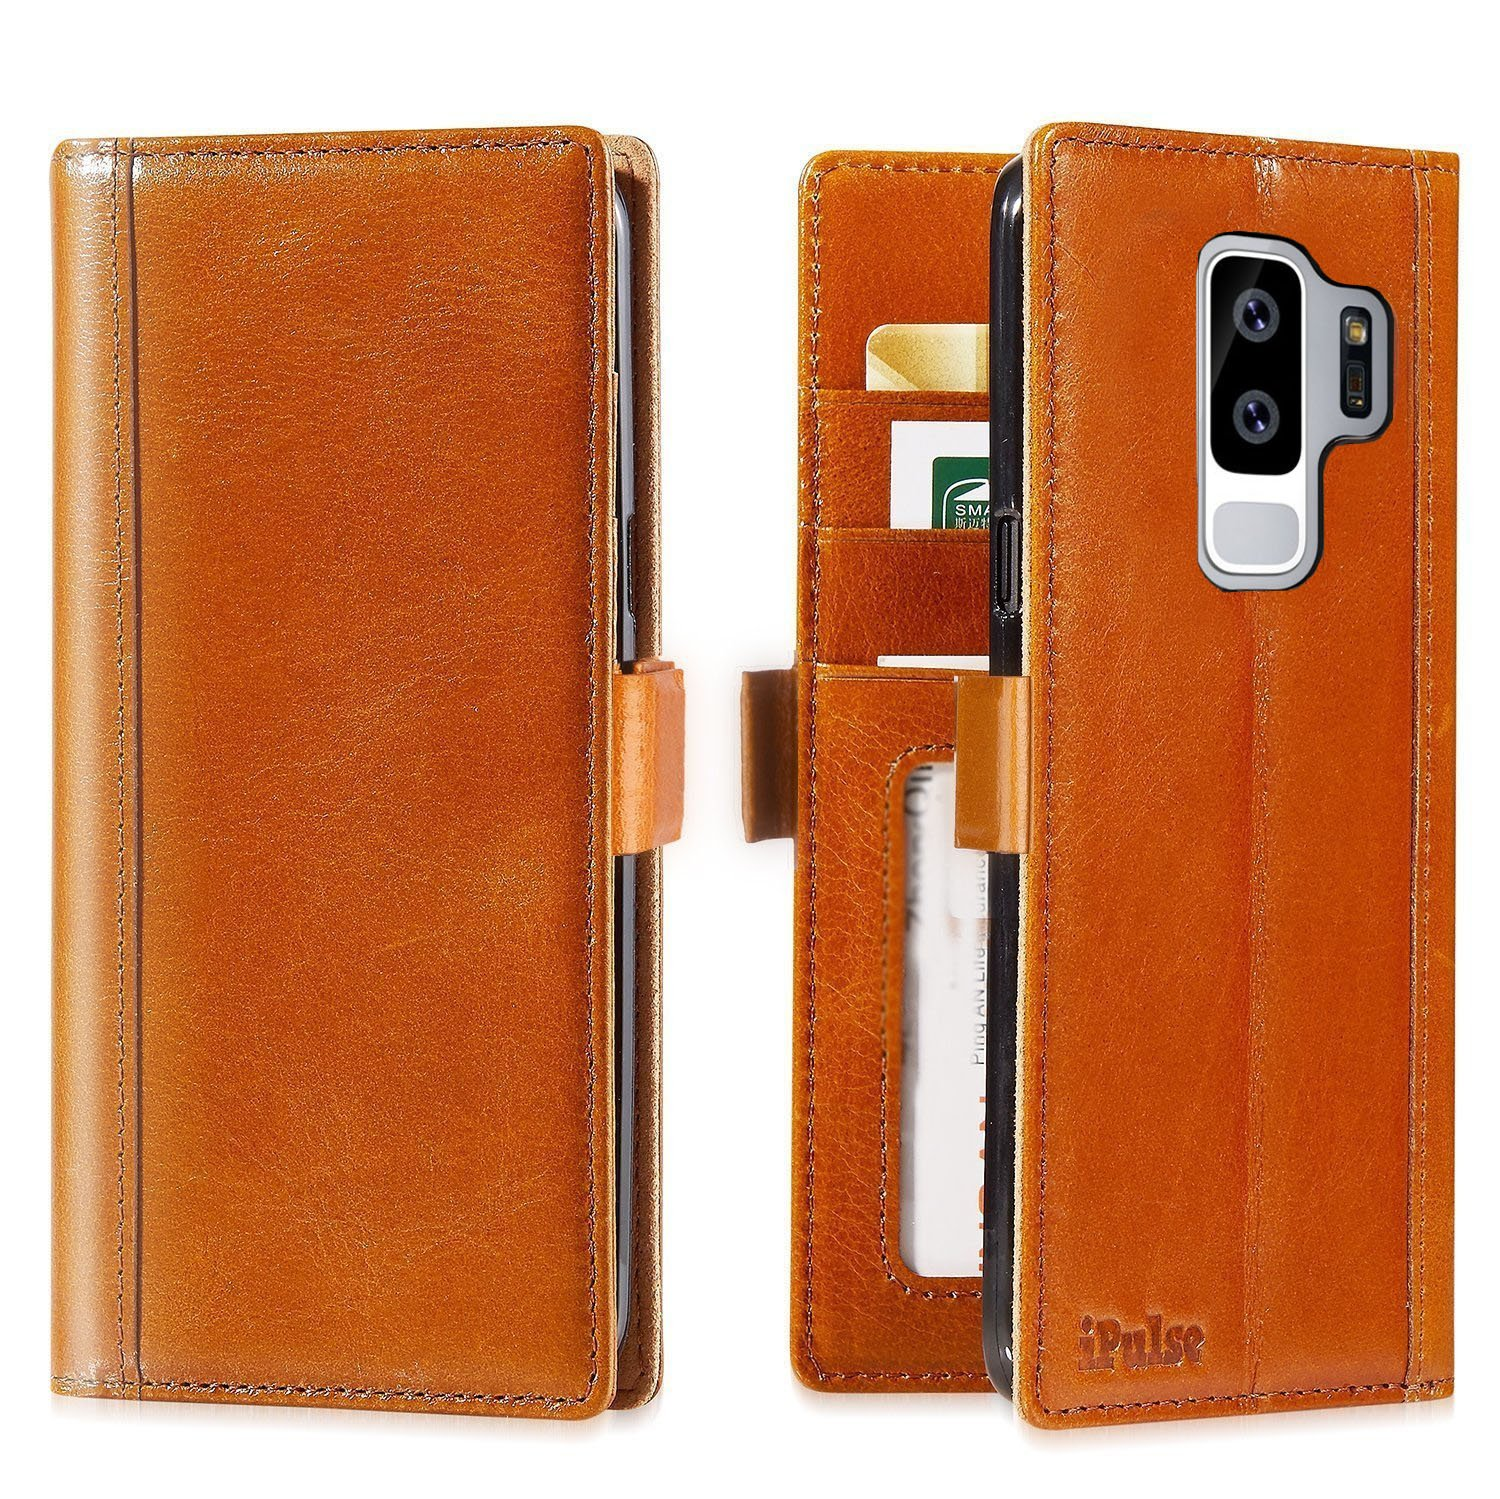 Galaxy S9 Plus Wallet Case Leather - iPulse Journal Series Italian Full Grain Leather Handmade Flip Case For Samsung Galaxy S9 Plus with Magnetic Closure - Cognac